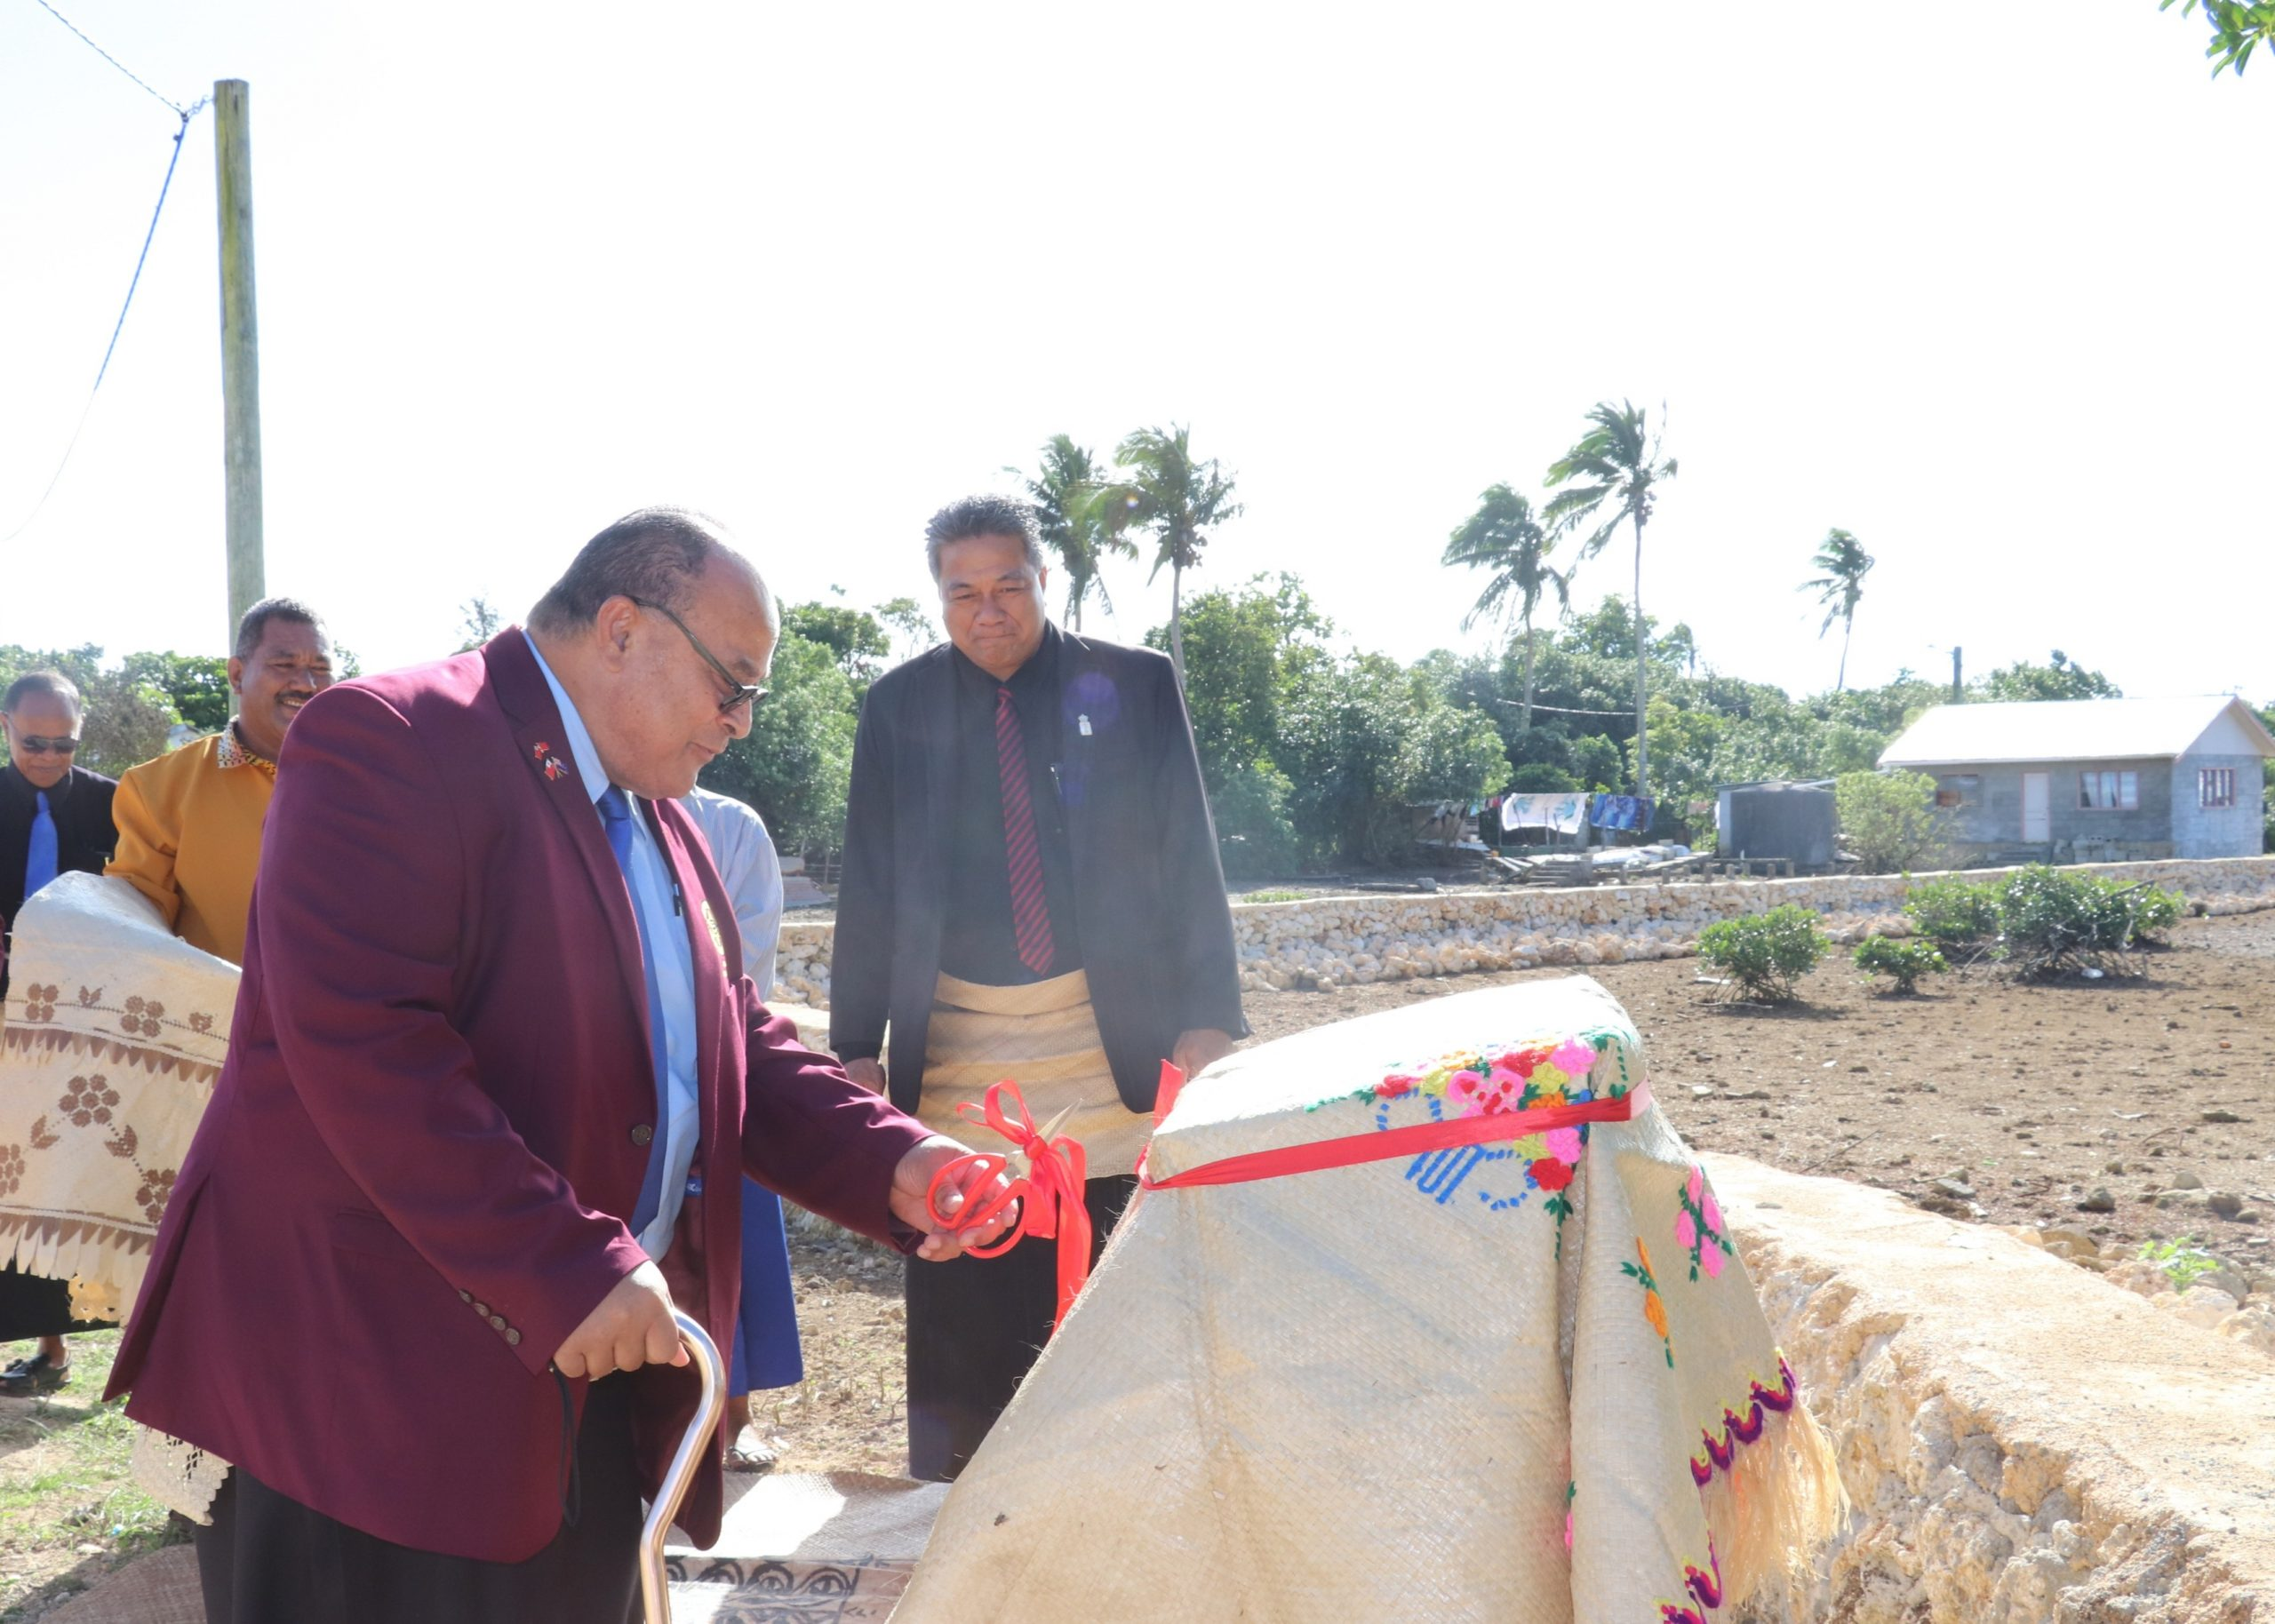 Prime Minister of Tonga Hon. Rev. Dr Pohiva Tu'i'onetoa commissioned the new seawall for 'Ahau last Friday afternoon.